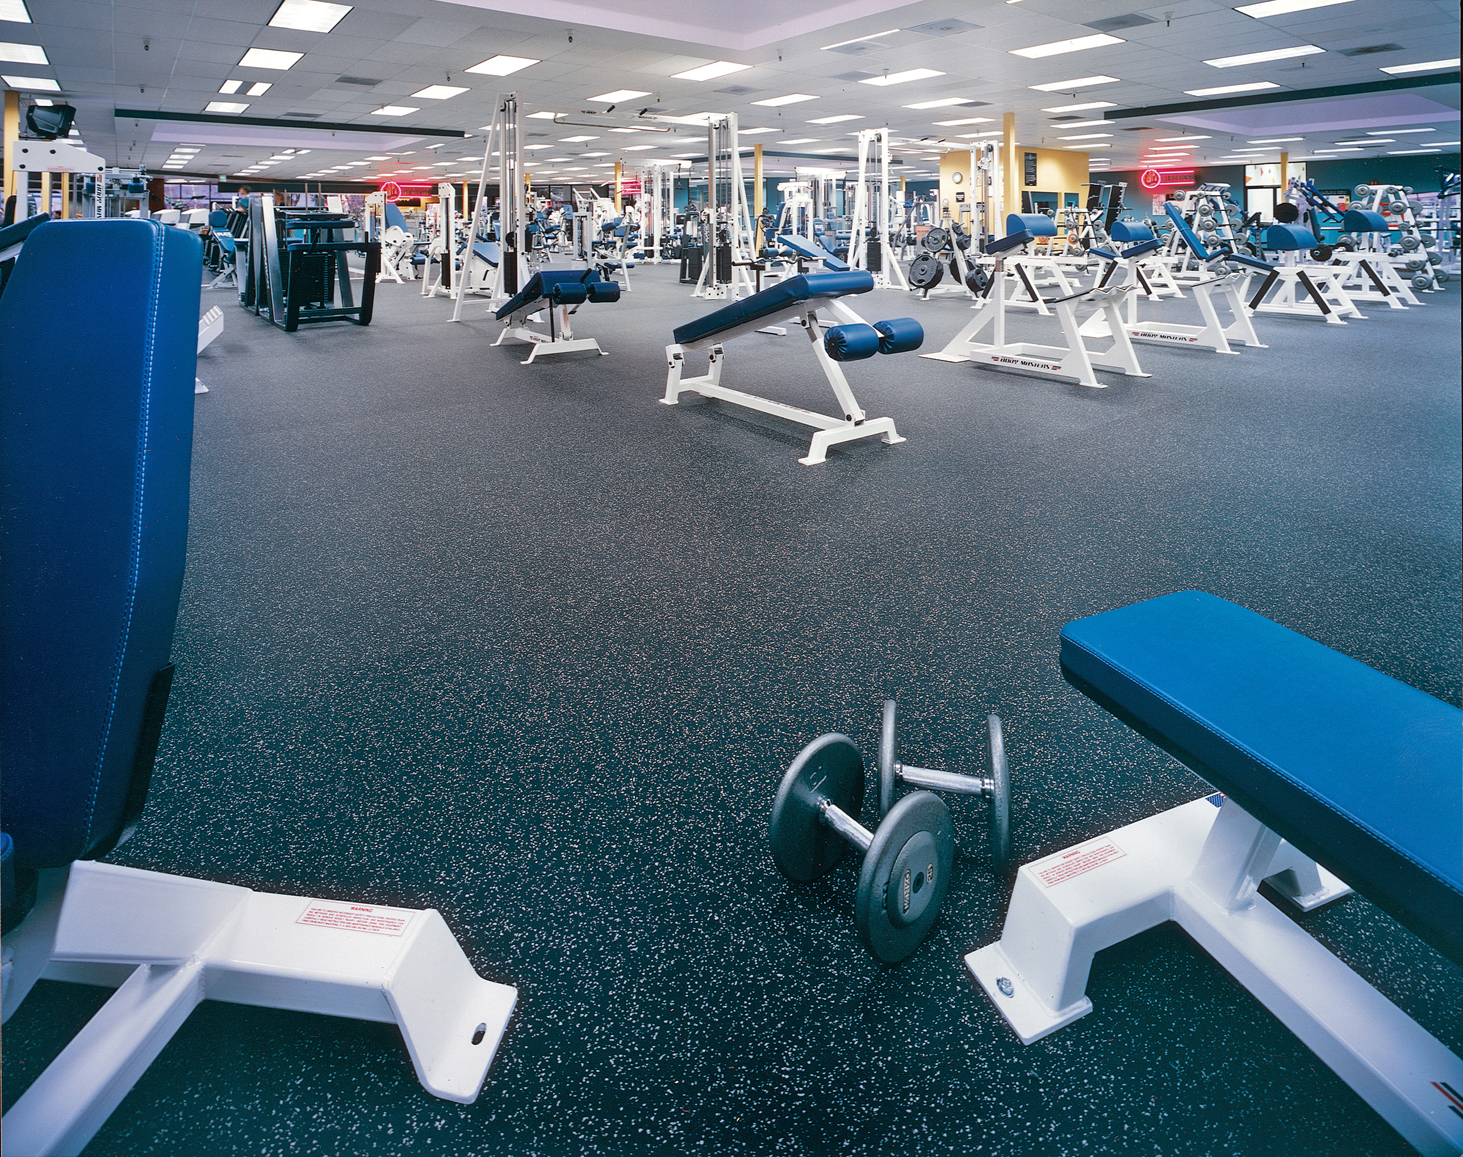 galaxy flooring ekhs floors robbins weight sports room options high school rooms floor surfaces